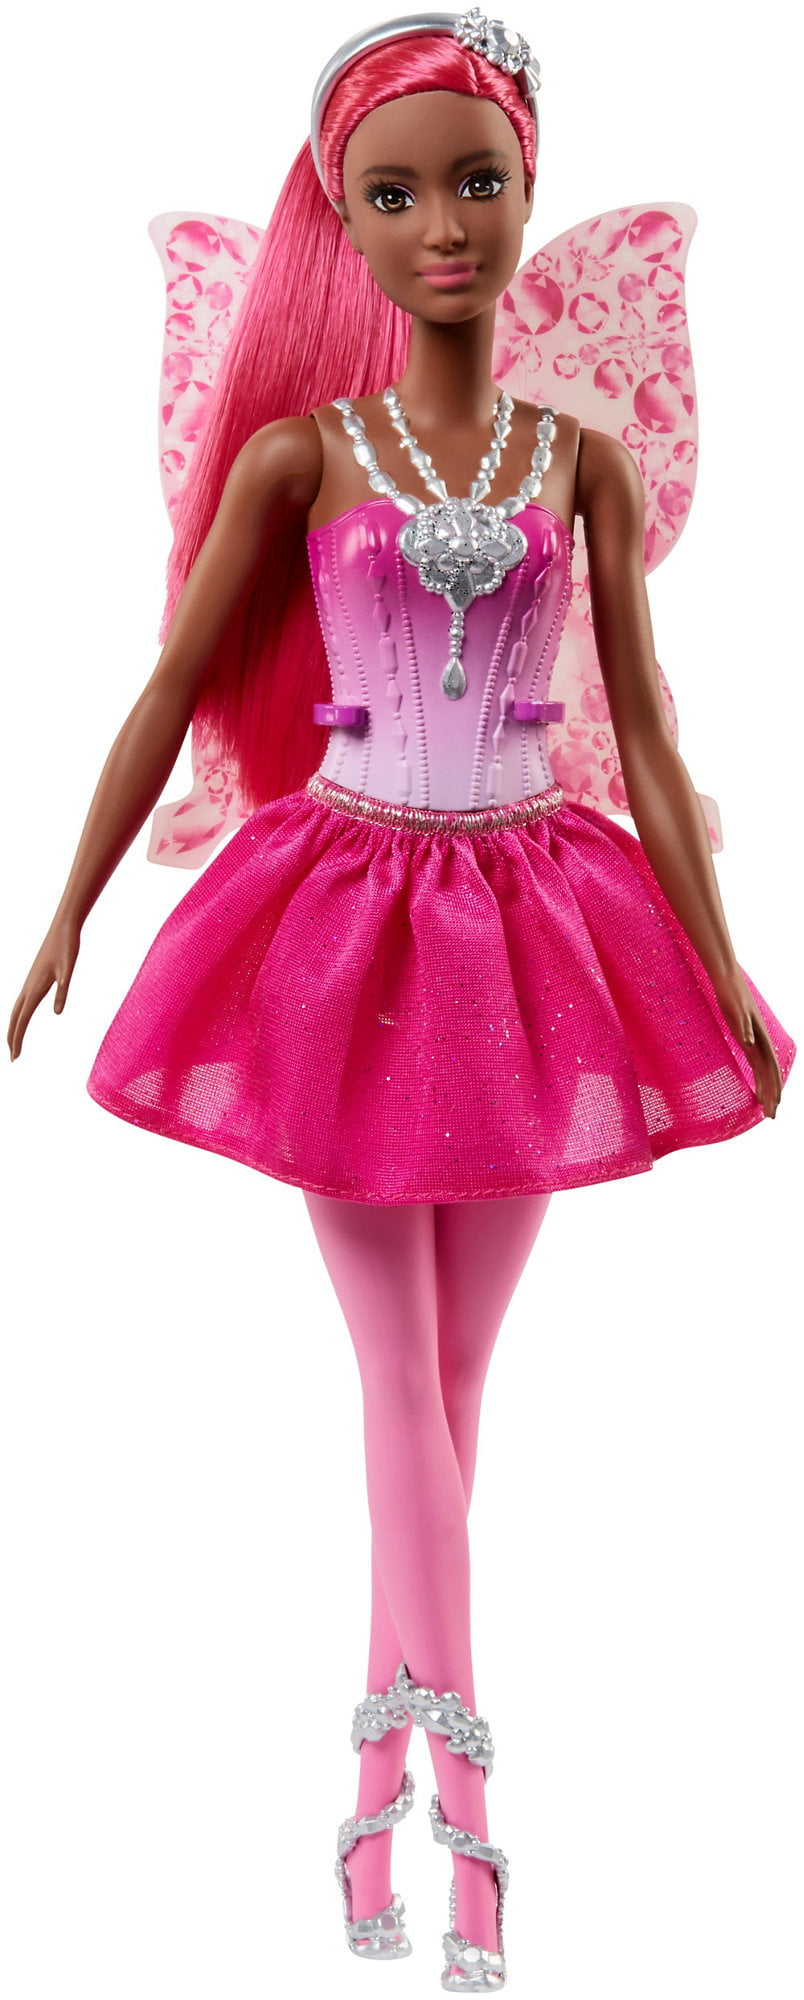 Click here to buy Barbie Dreamtopia Fairy Doll, Red Hair by Mattel.